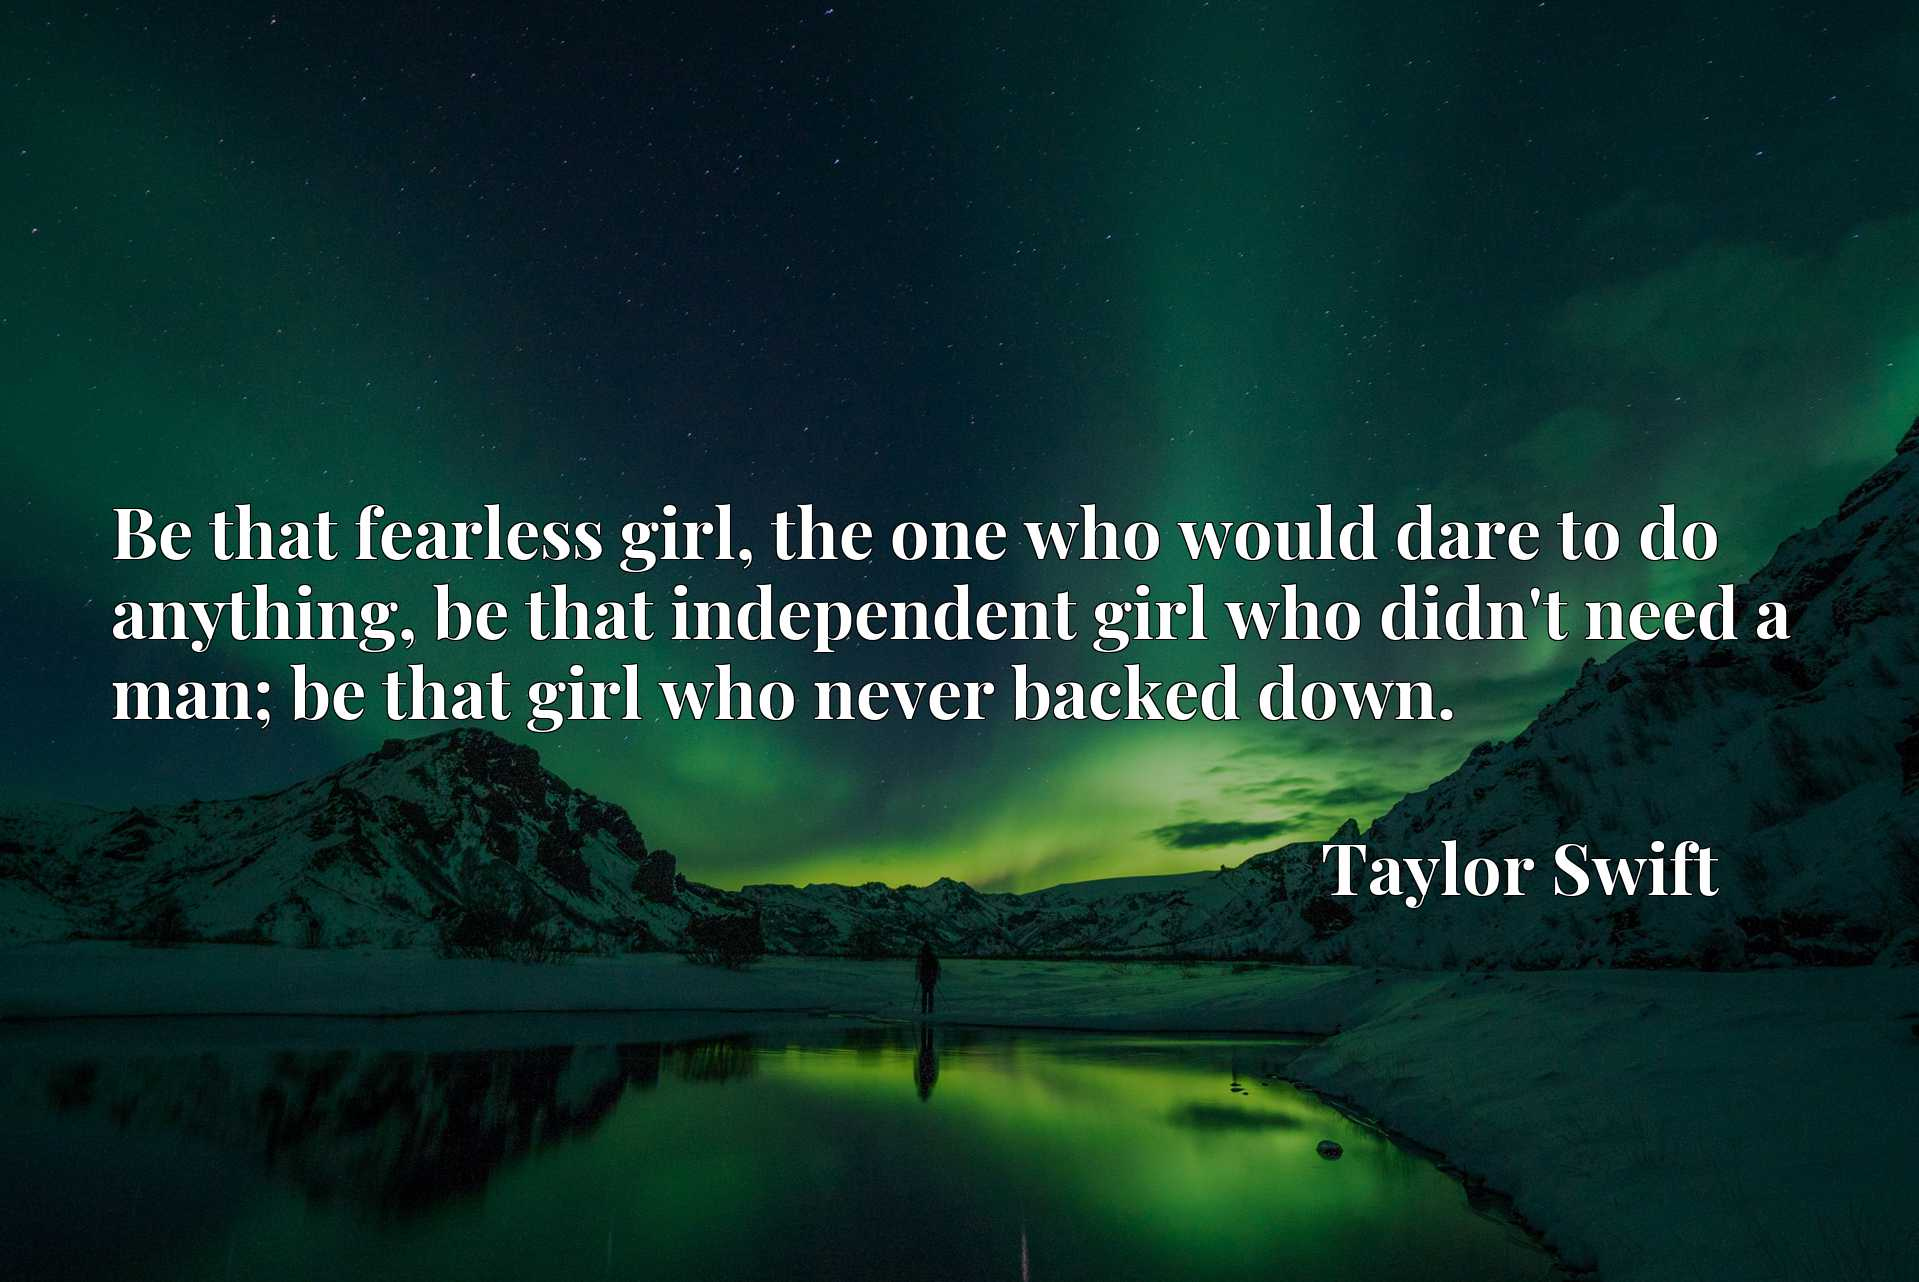 Be that fearless girl, the one who would dare to do anything, be that independent girl who didn't need a man; be that girl who never backed down.